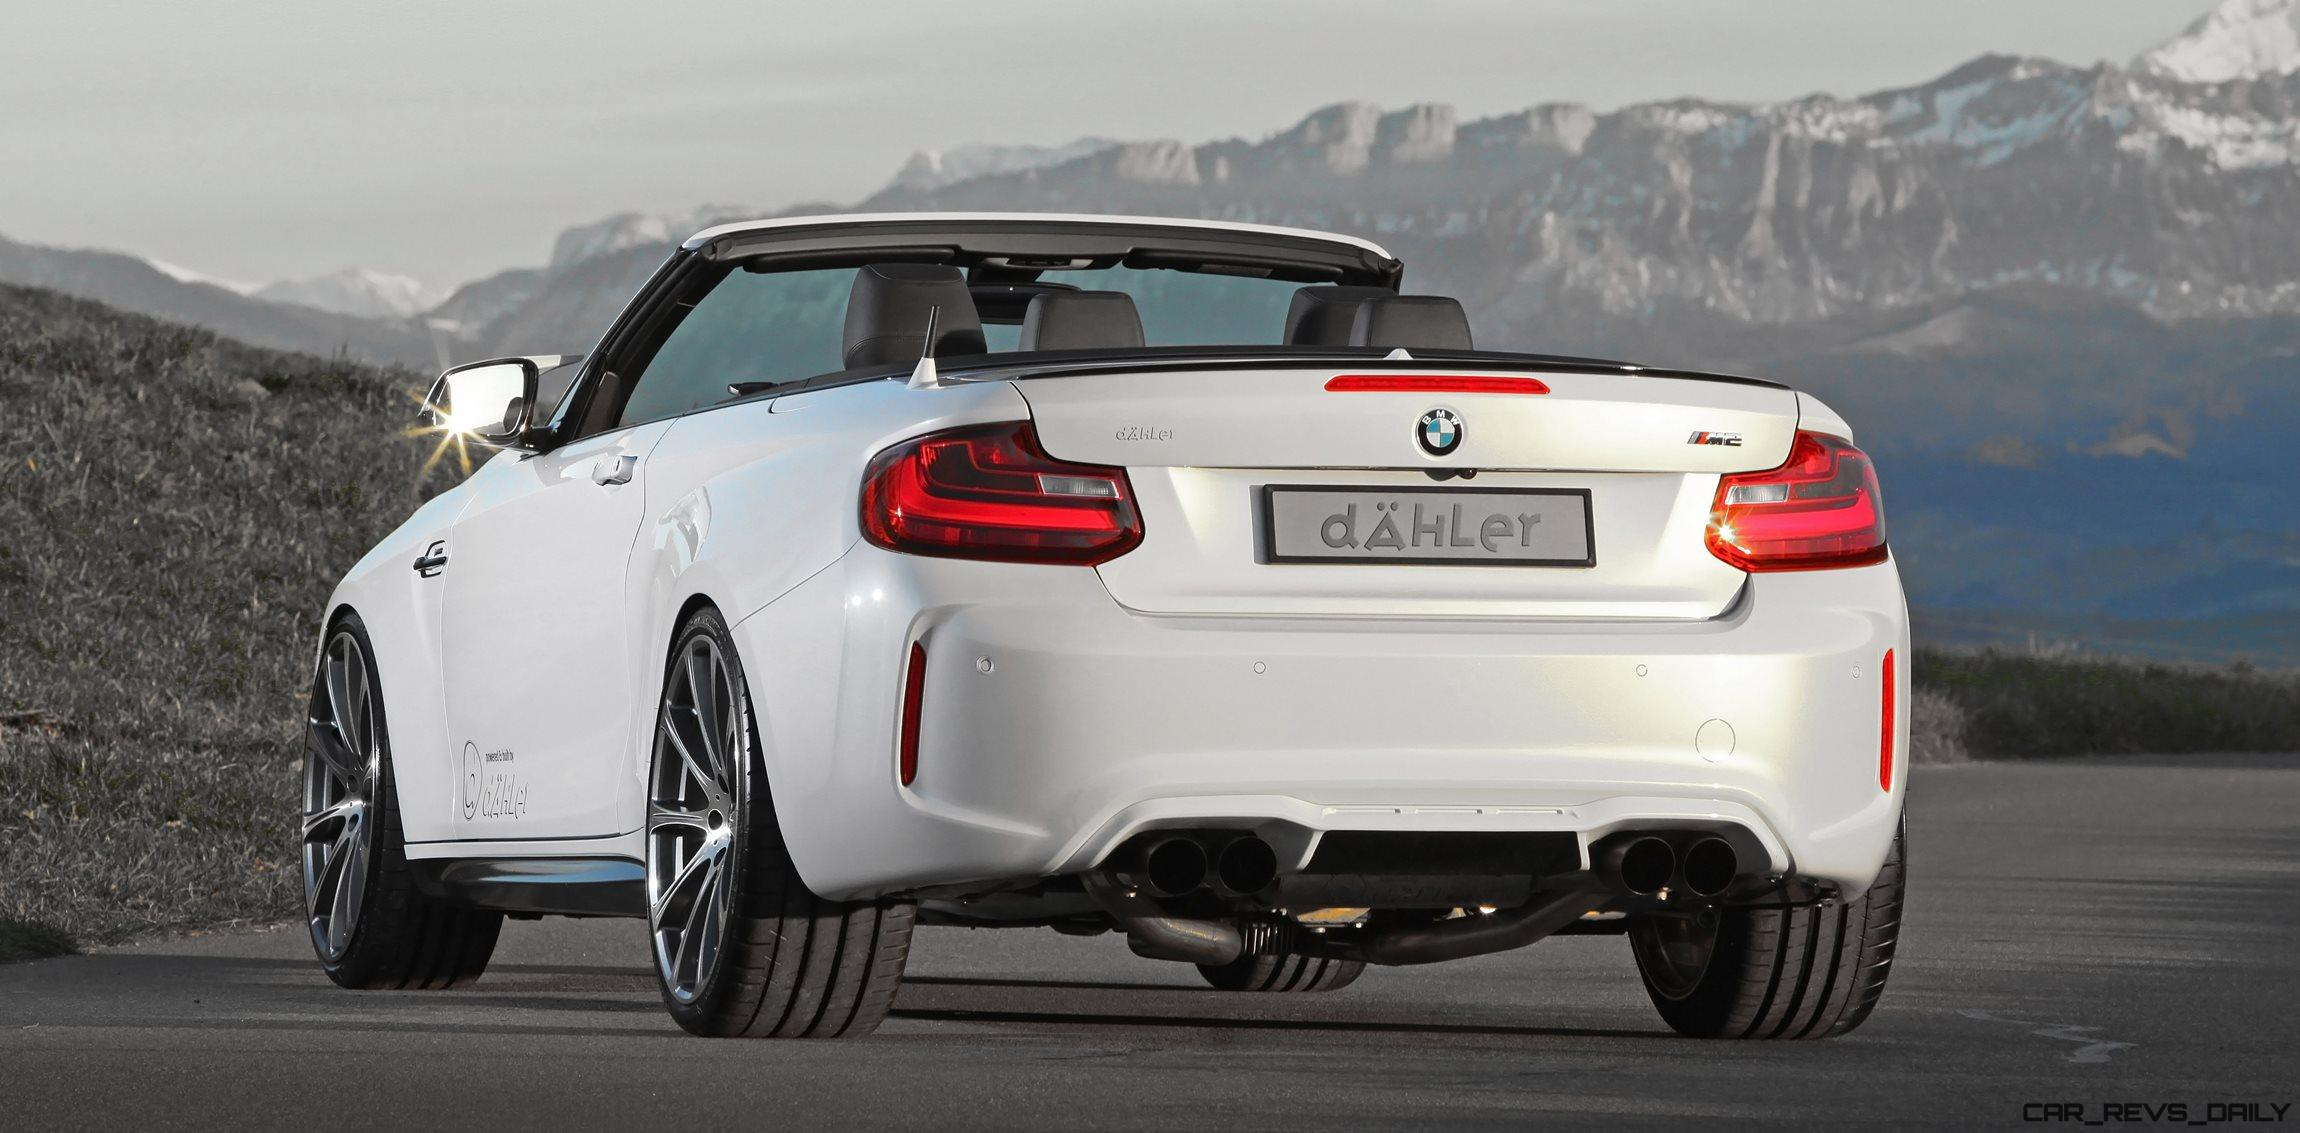 540hp Bmw M2 Clubsport By D Hler Brings S55 M4 Engine Swap